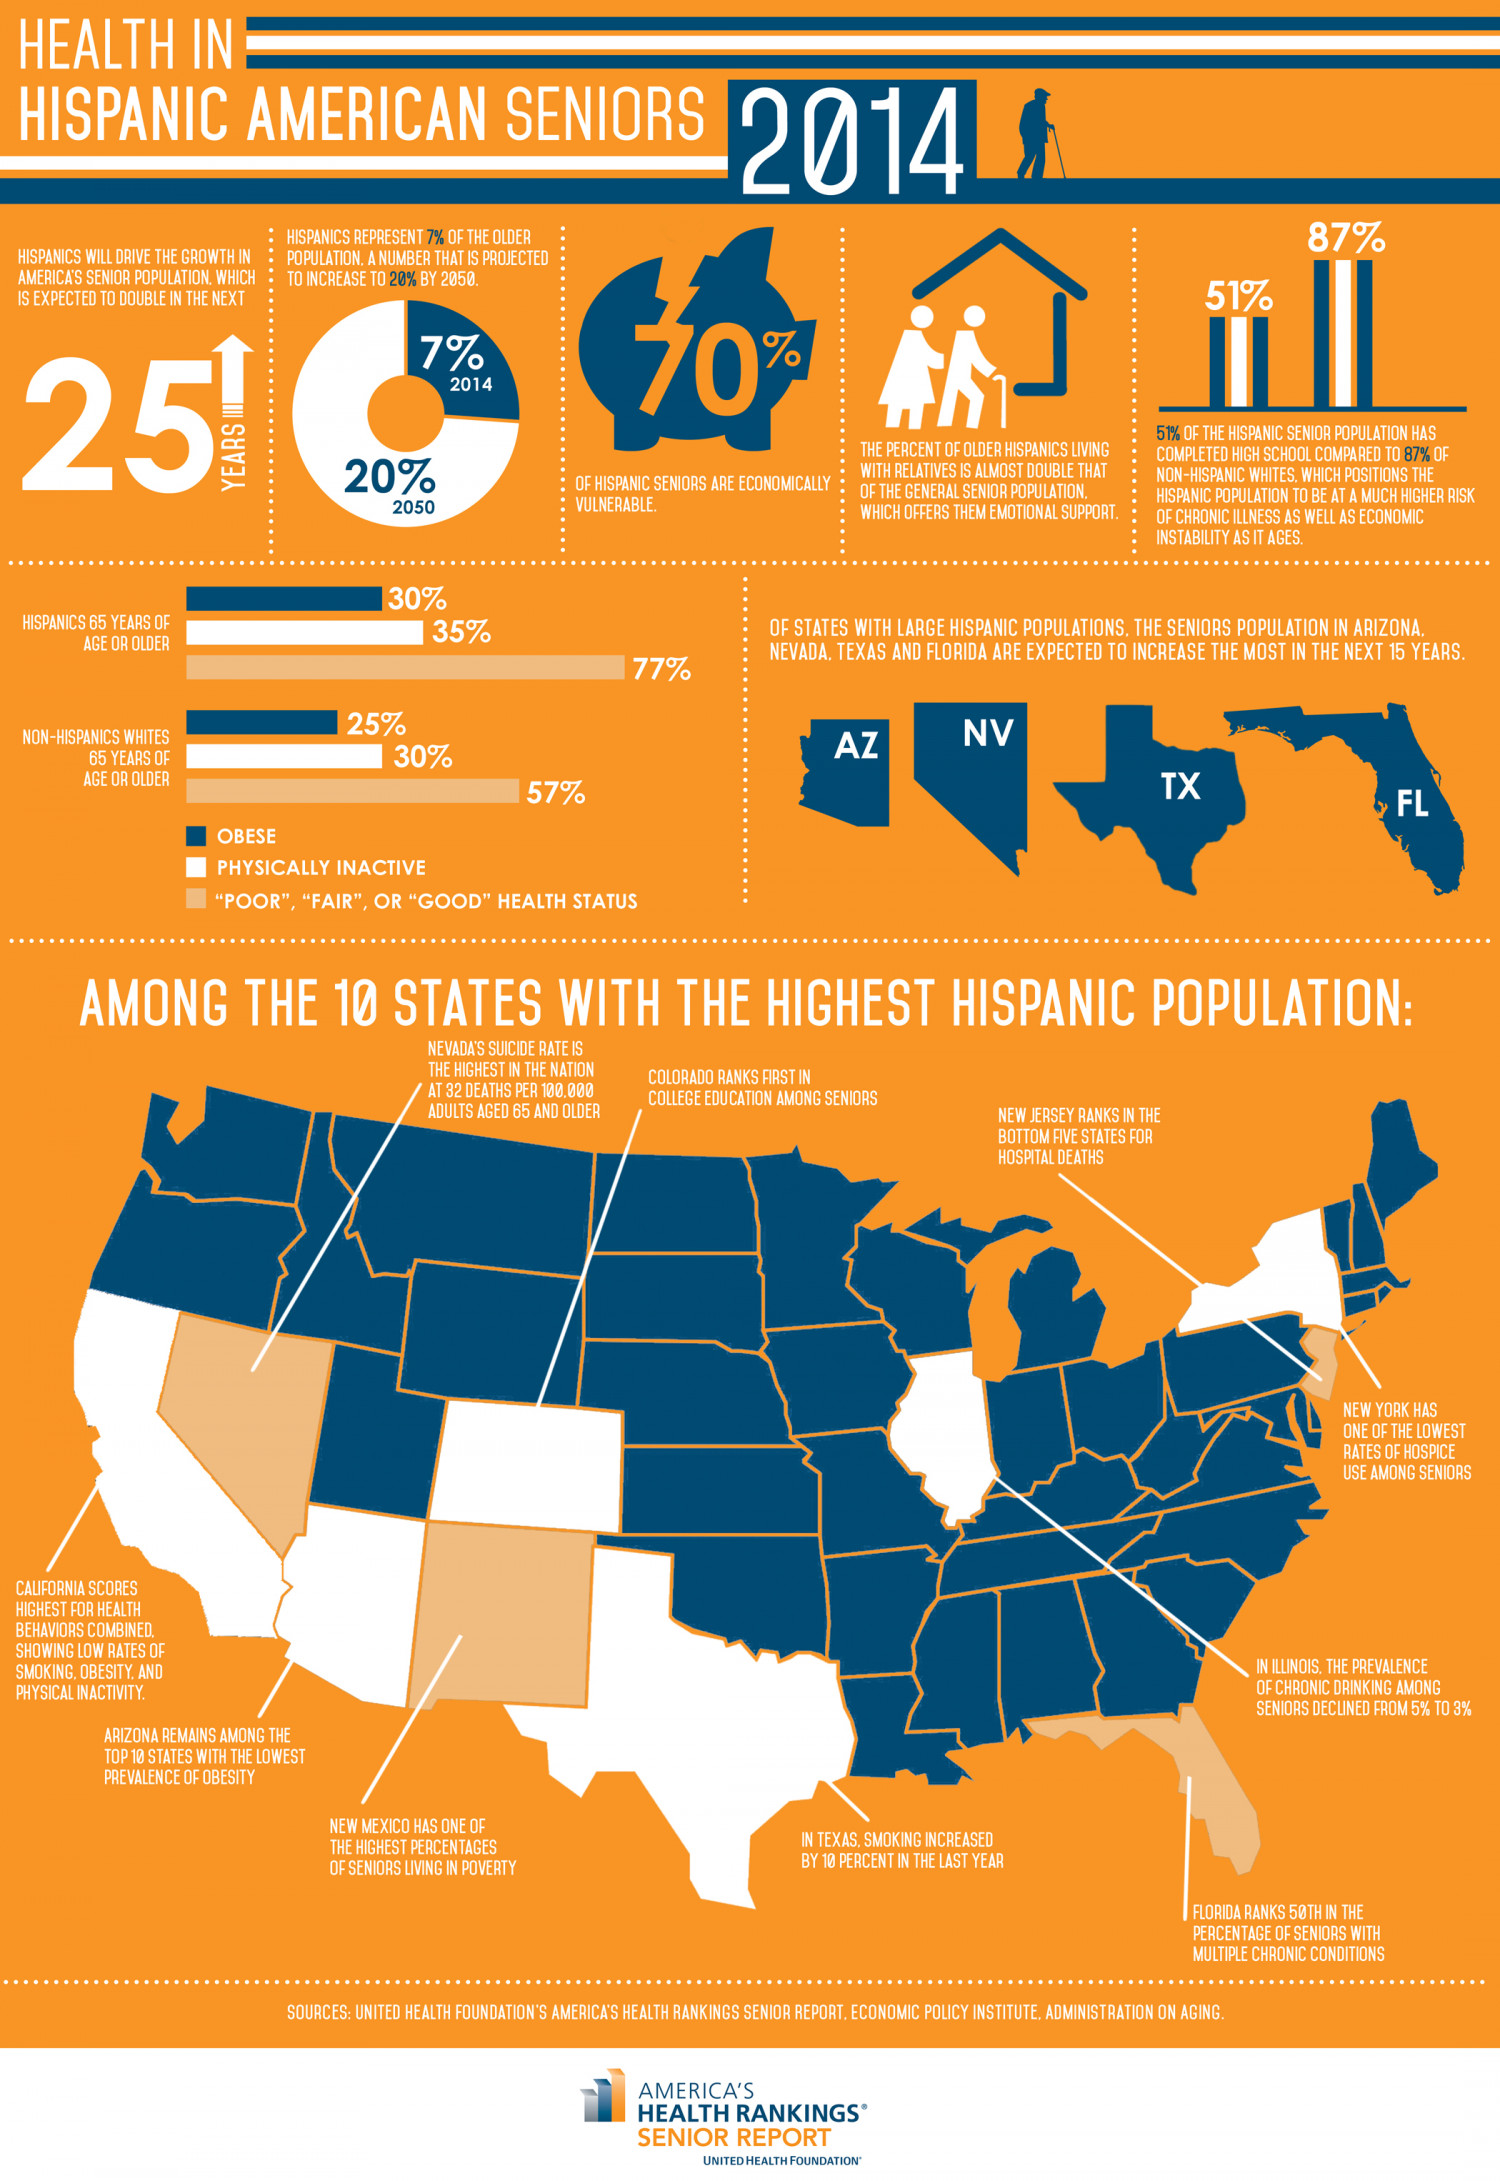 Health in Hispanic American Seniors 2014 Infographic